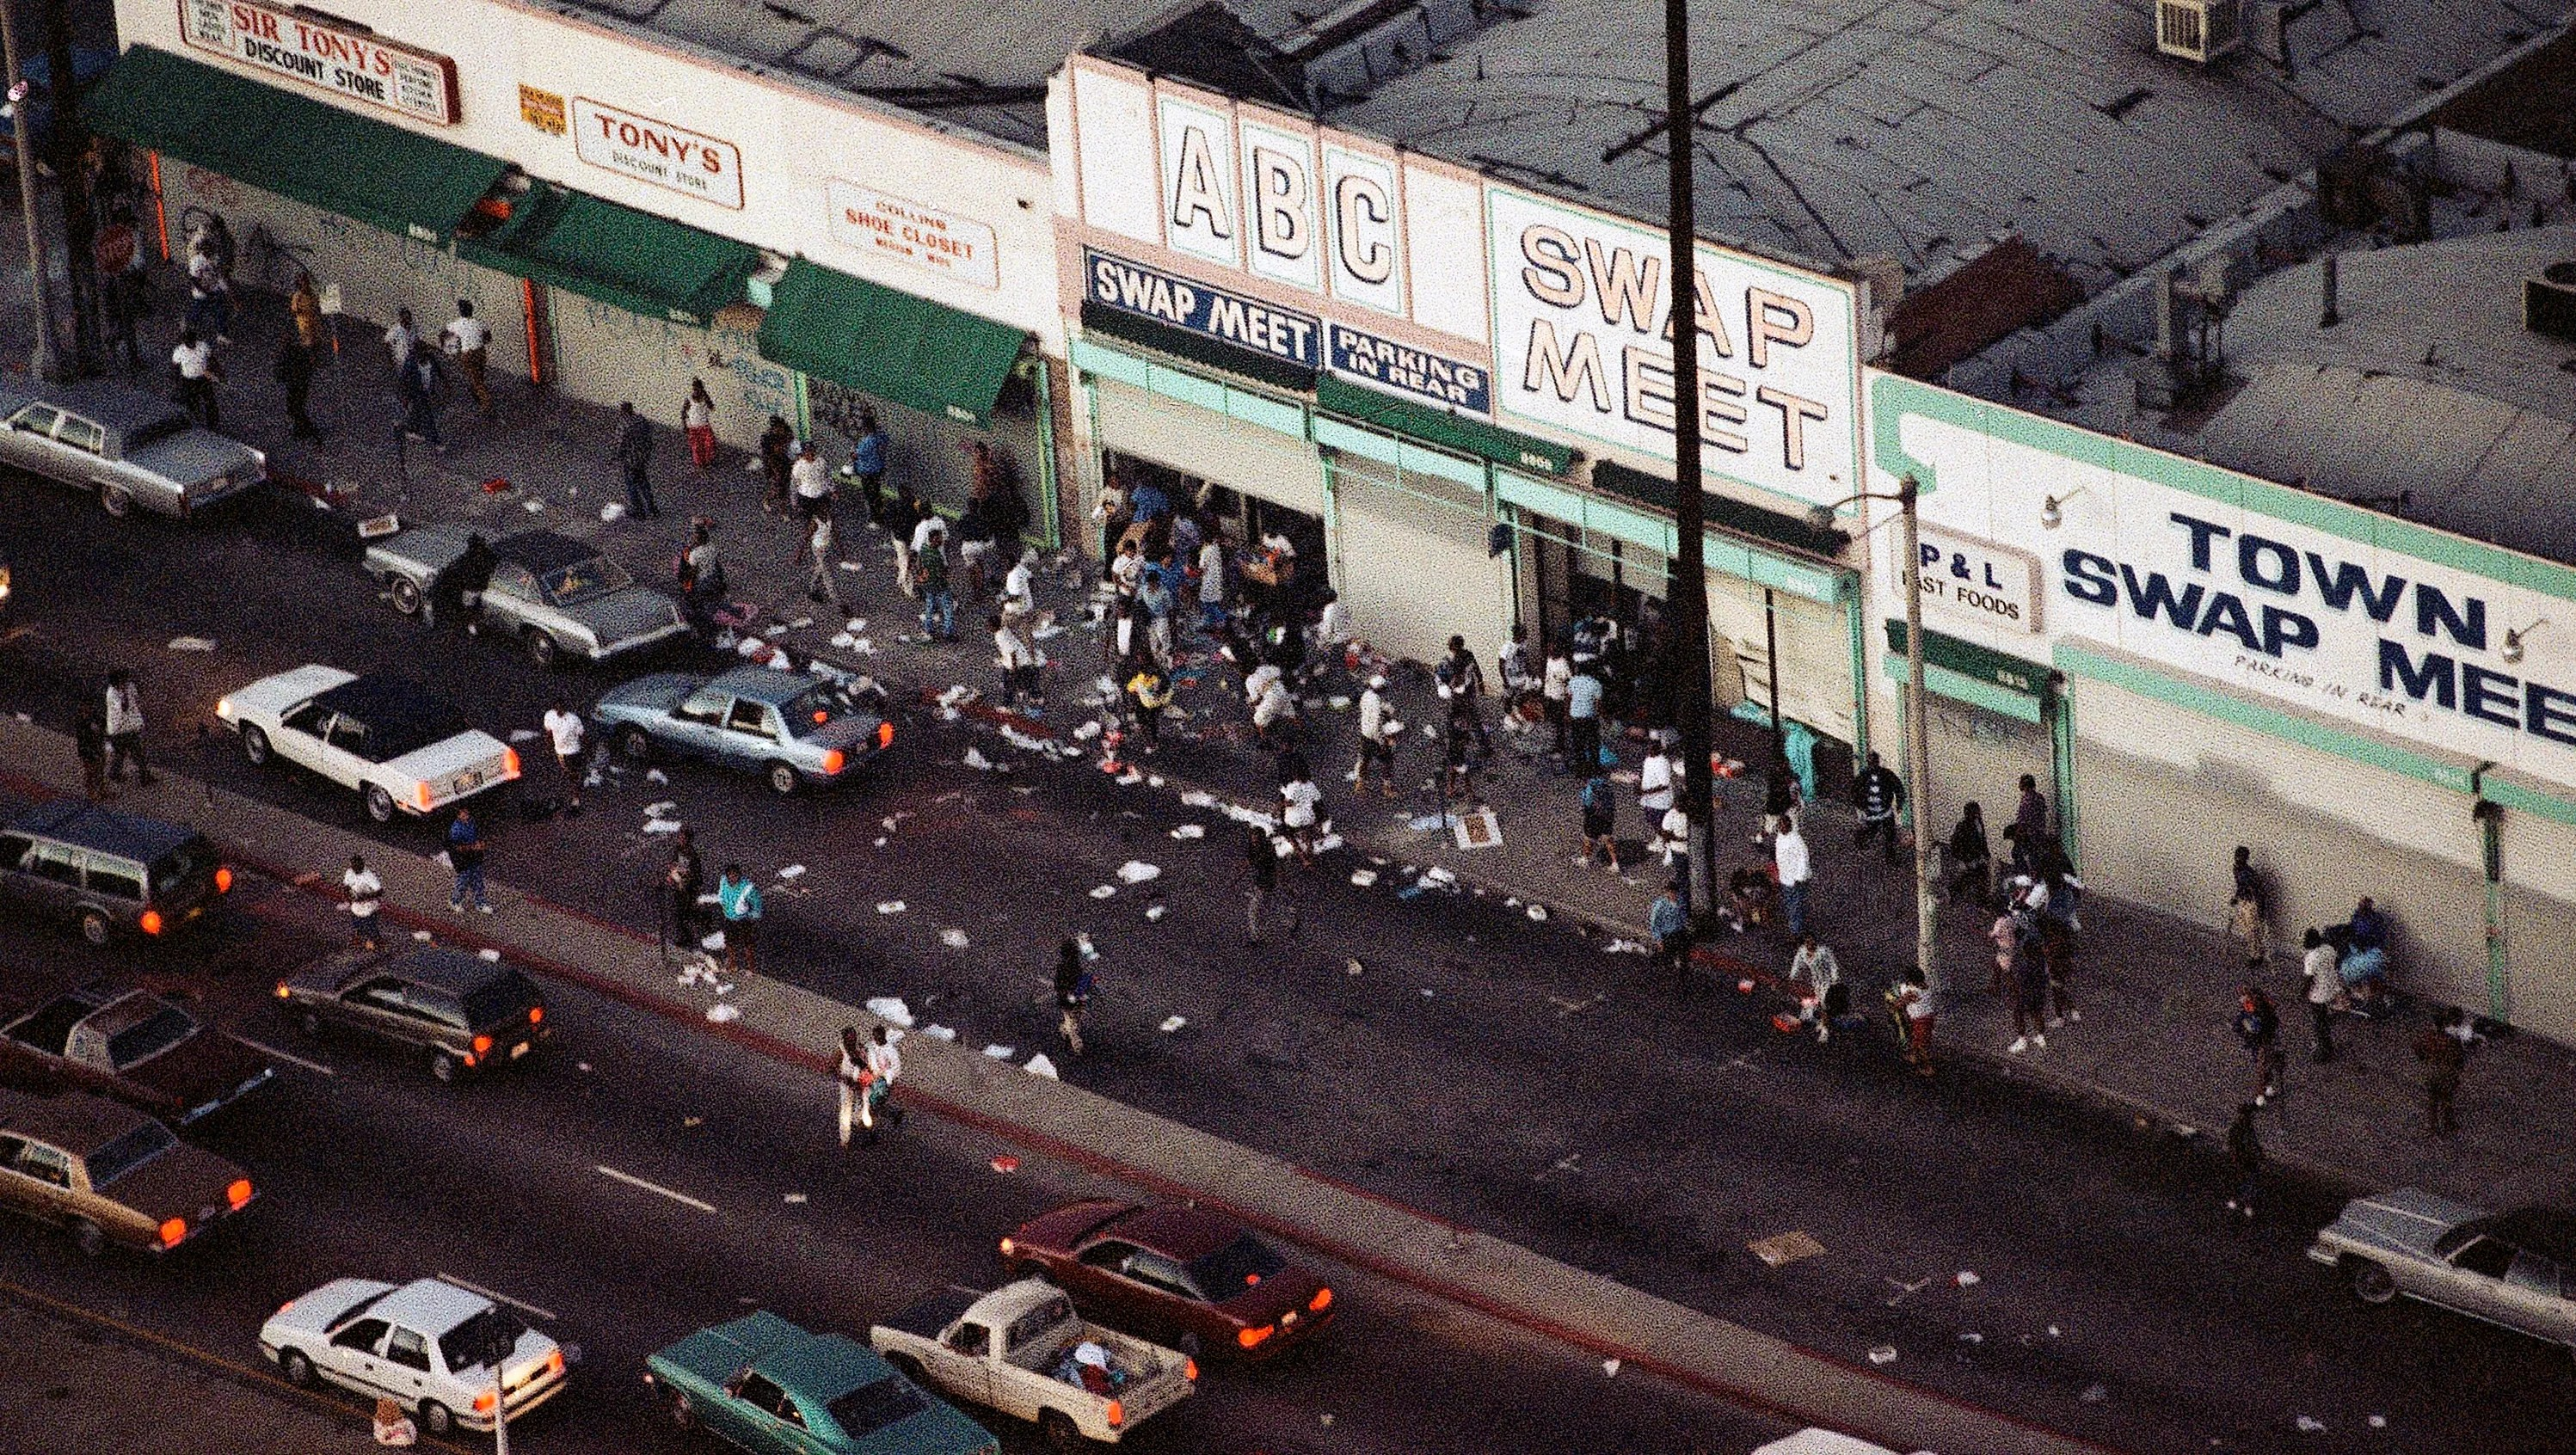 In this April 29, 1992, file photo, people enter and leave a swap meet in Los Angeles. Violence broke out in the area after four Los Angeles police officers were acquitted on all but one charge for the videotaped beating of motorist Rodney King.